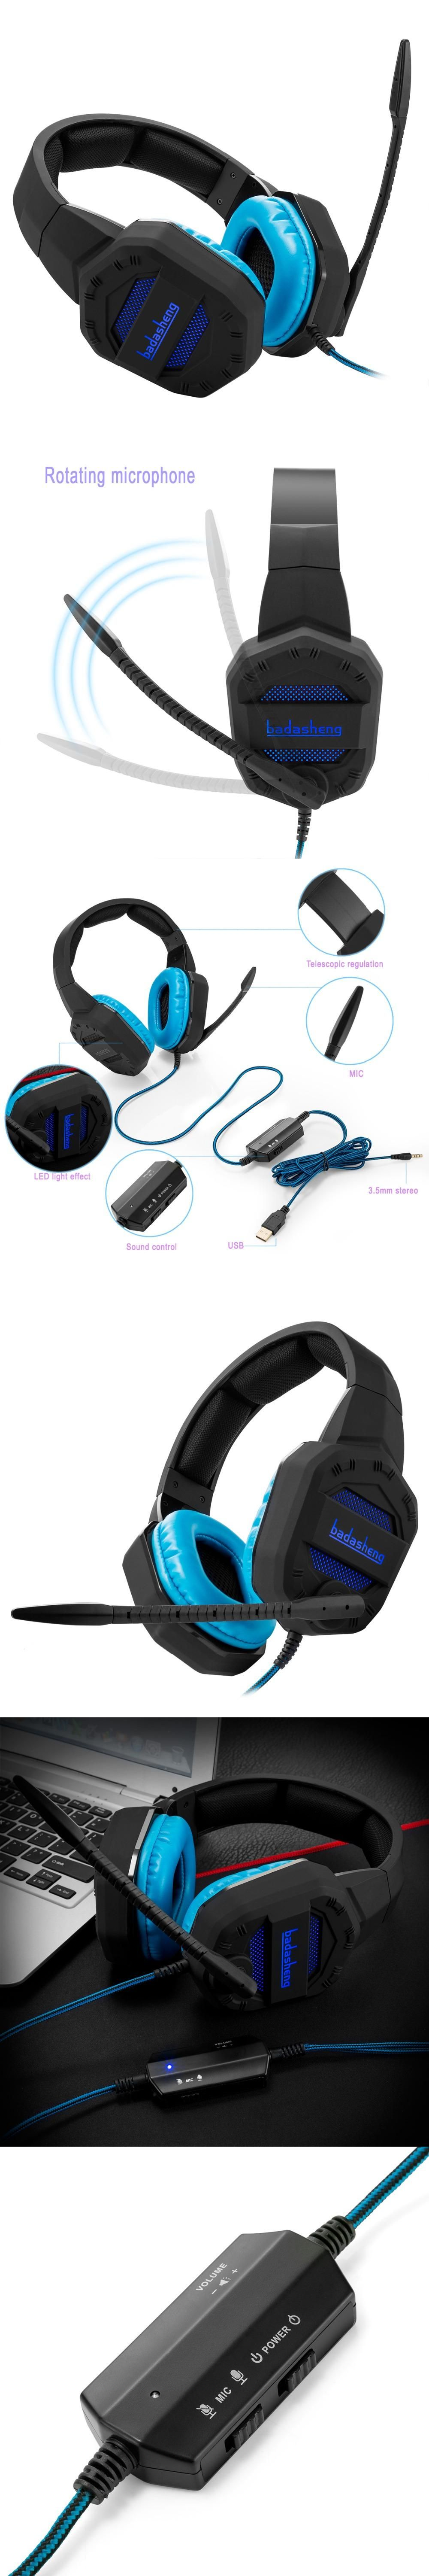 Led Light Ps4 Headphone Headsets For Xbox One Usb With 35mm Original Dacom Armor G06 Sport Ipx5 Waterproof Music Wireless Bluetooth Headset Plug Gaming Console